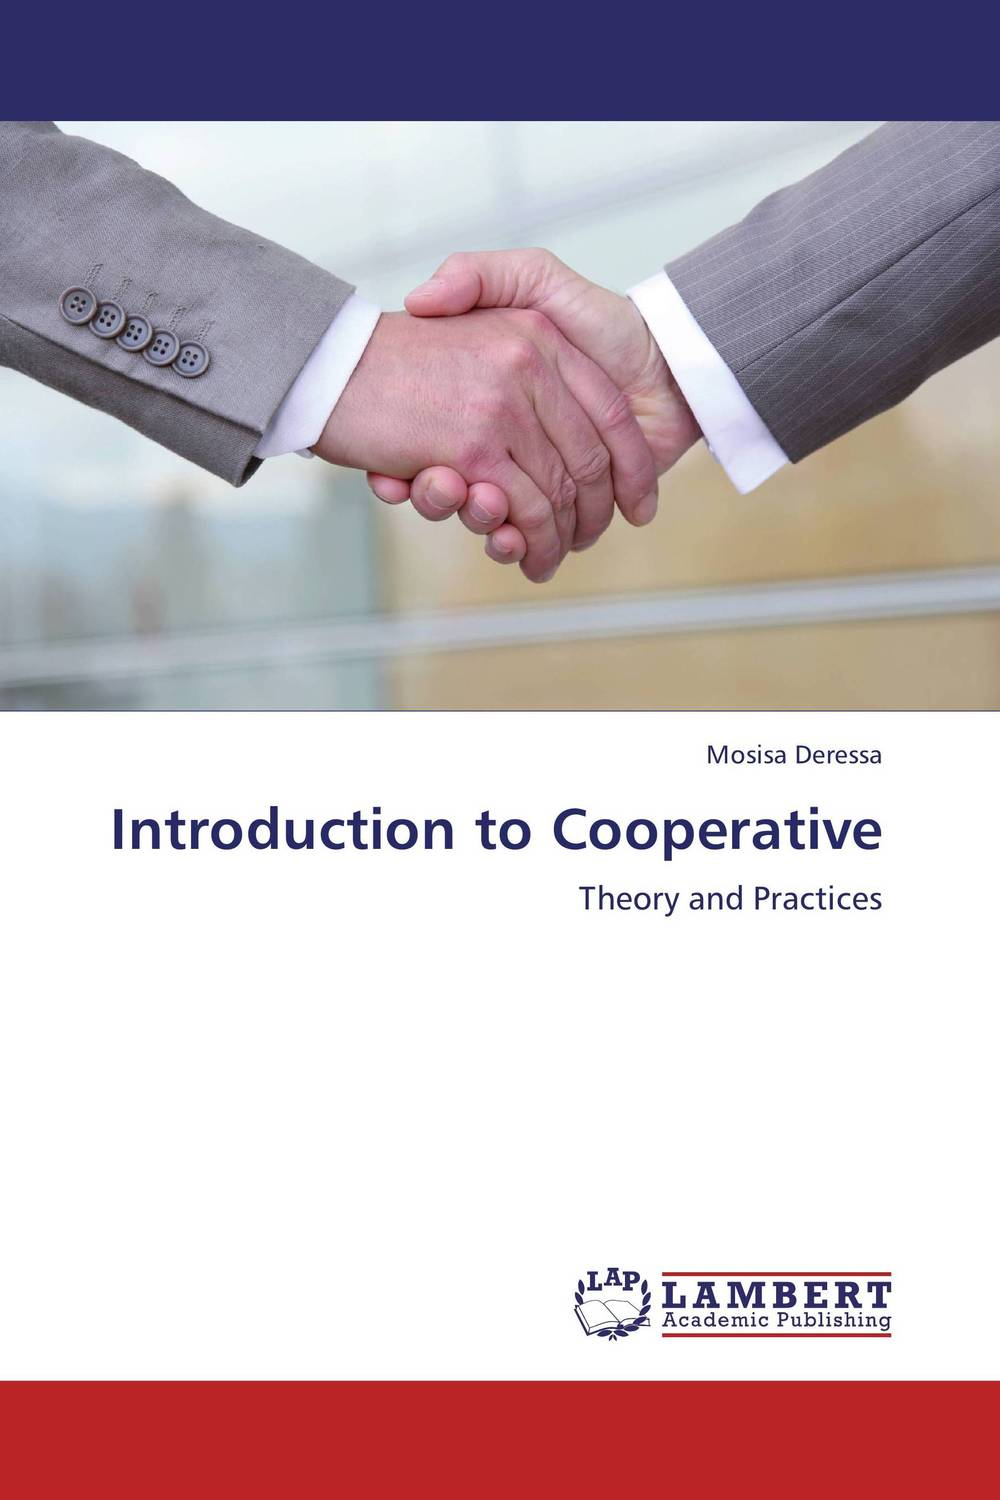 Introduction to Cooperative management of cooperative enterprises